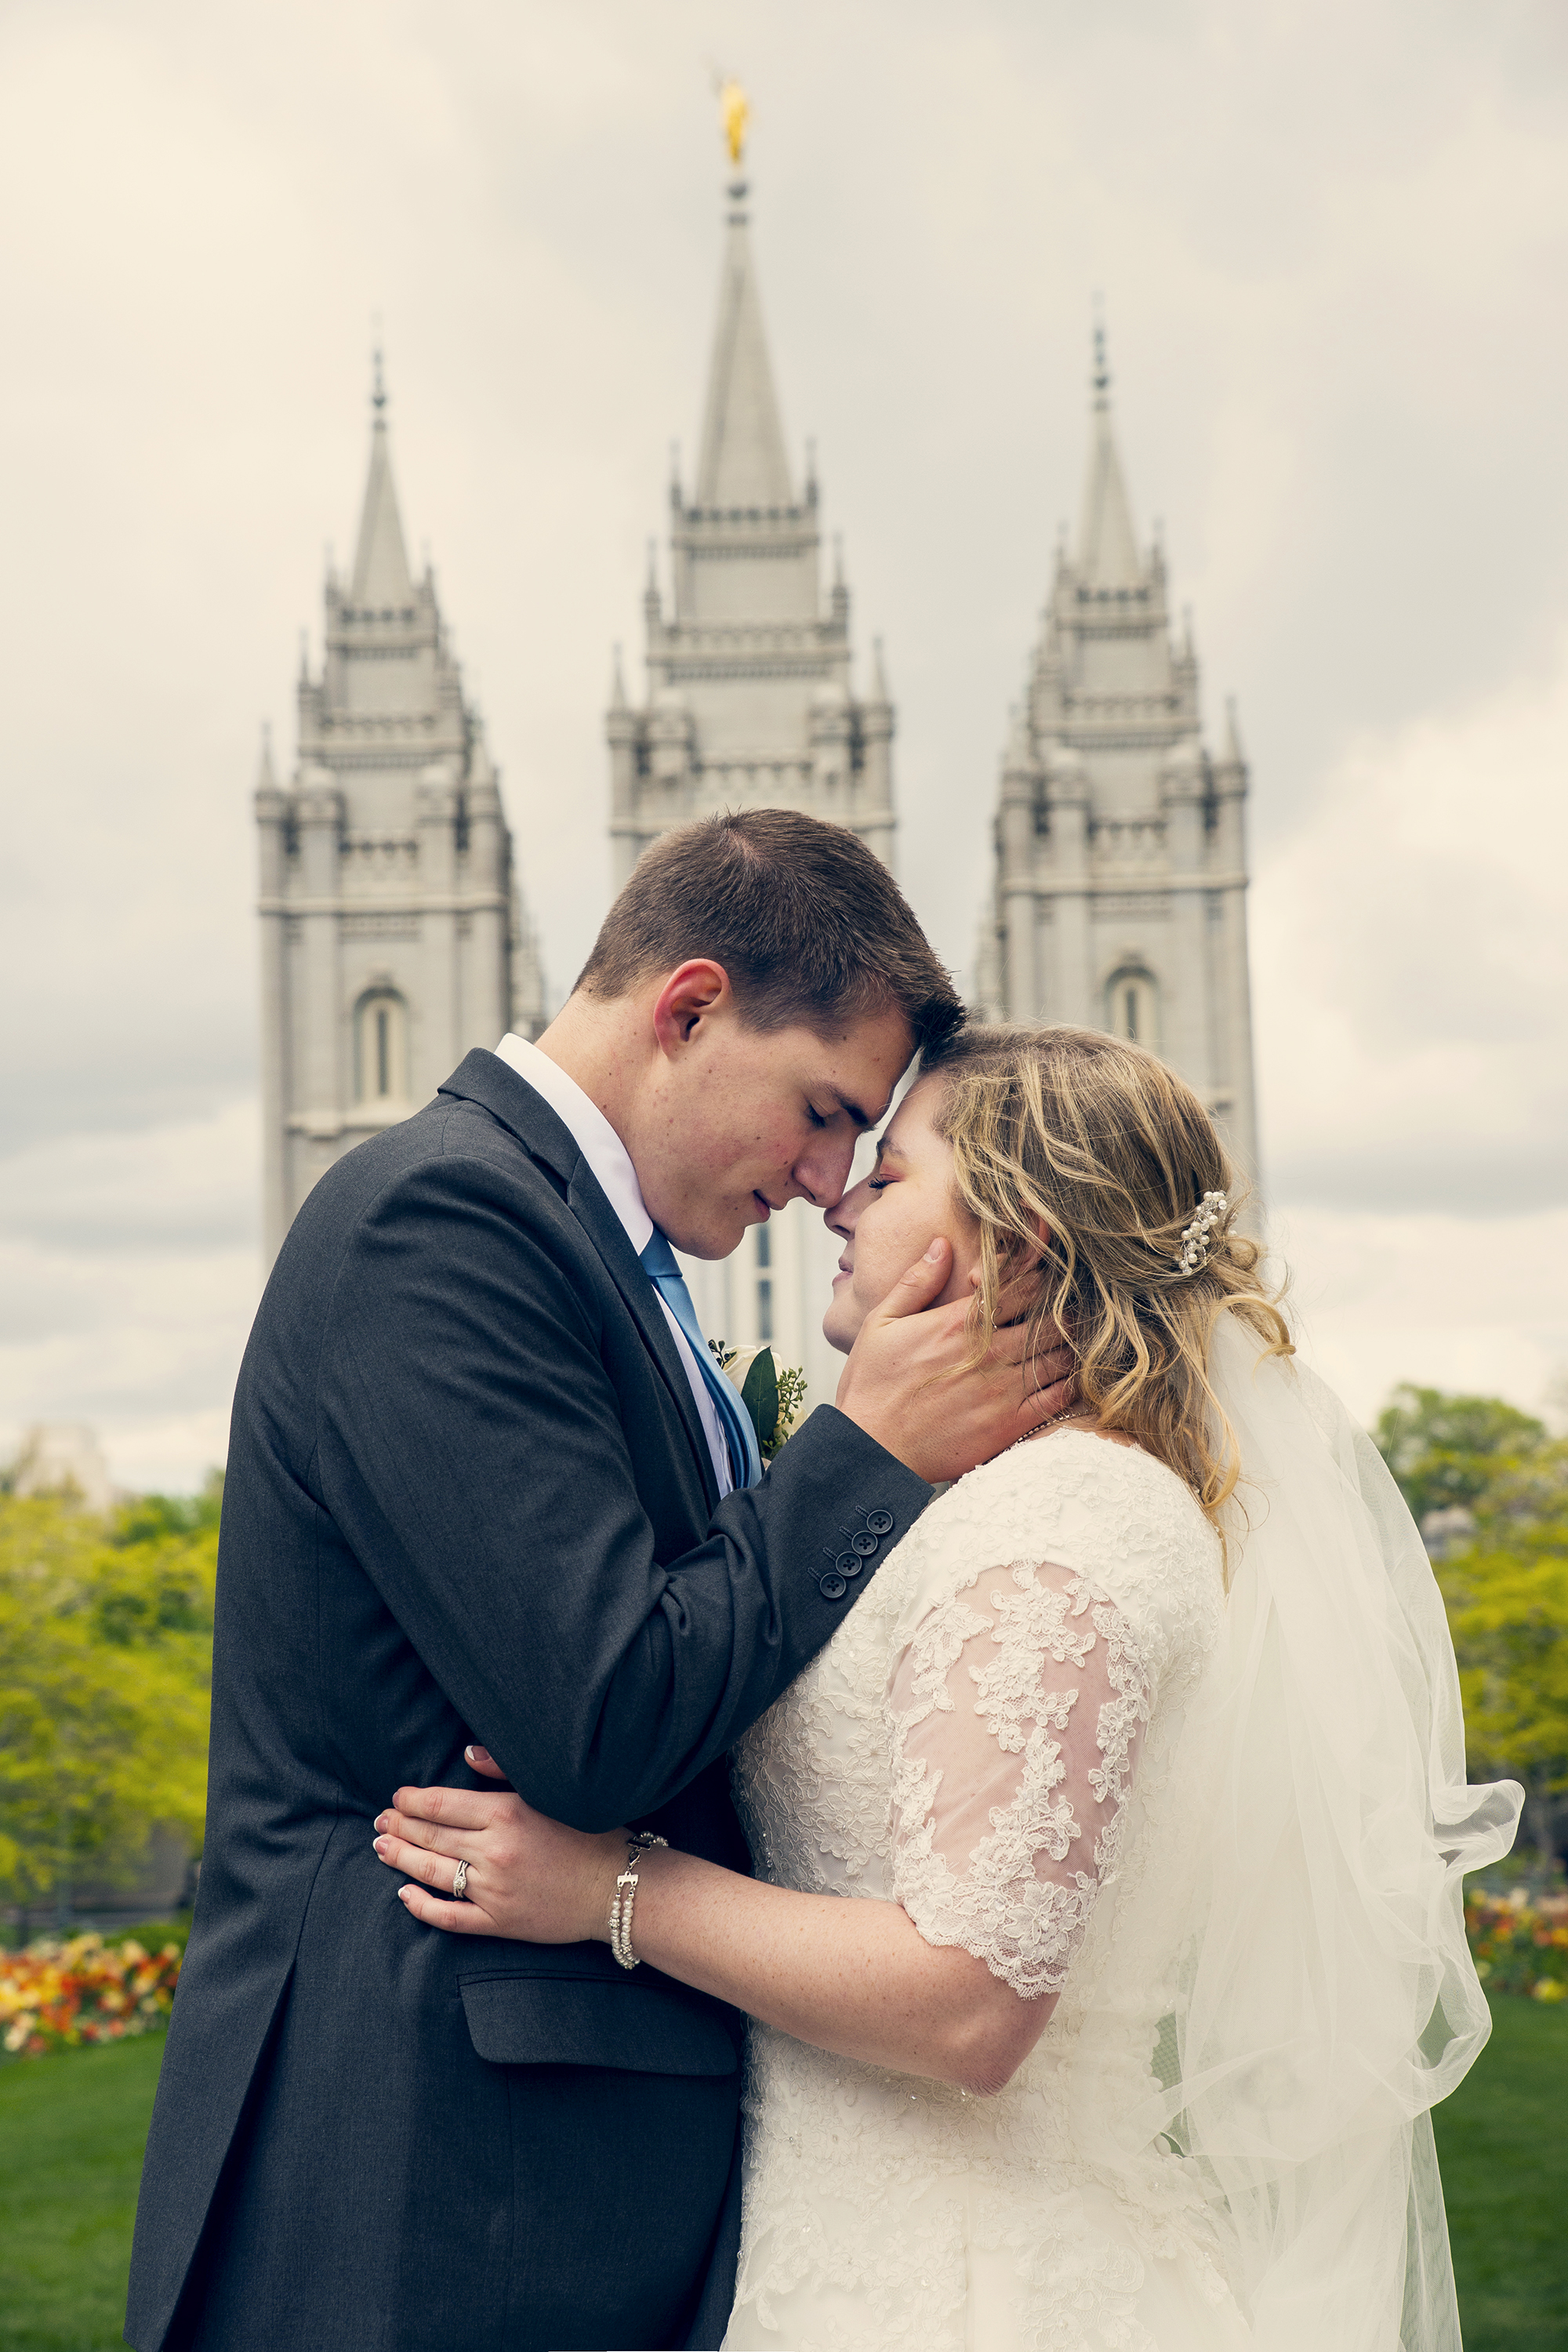 Bride and Groom embracing at Slat Lake City Temple